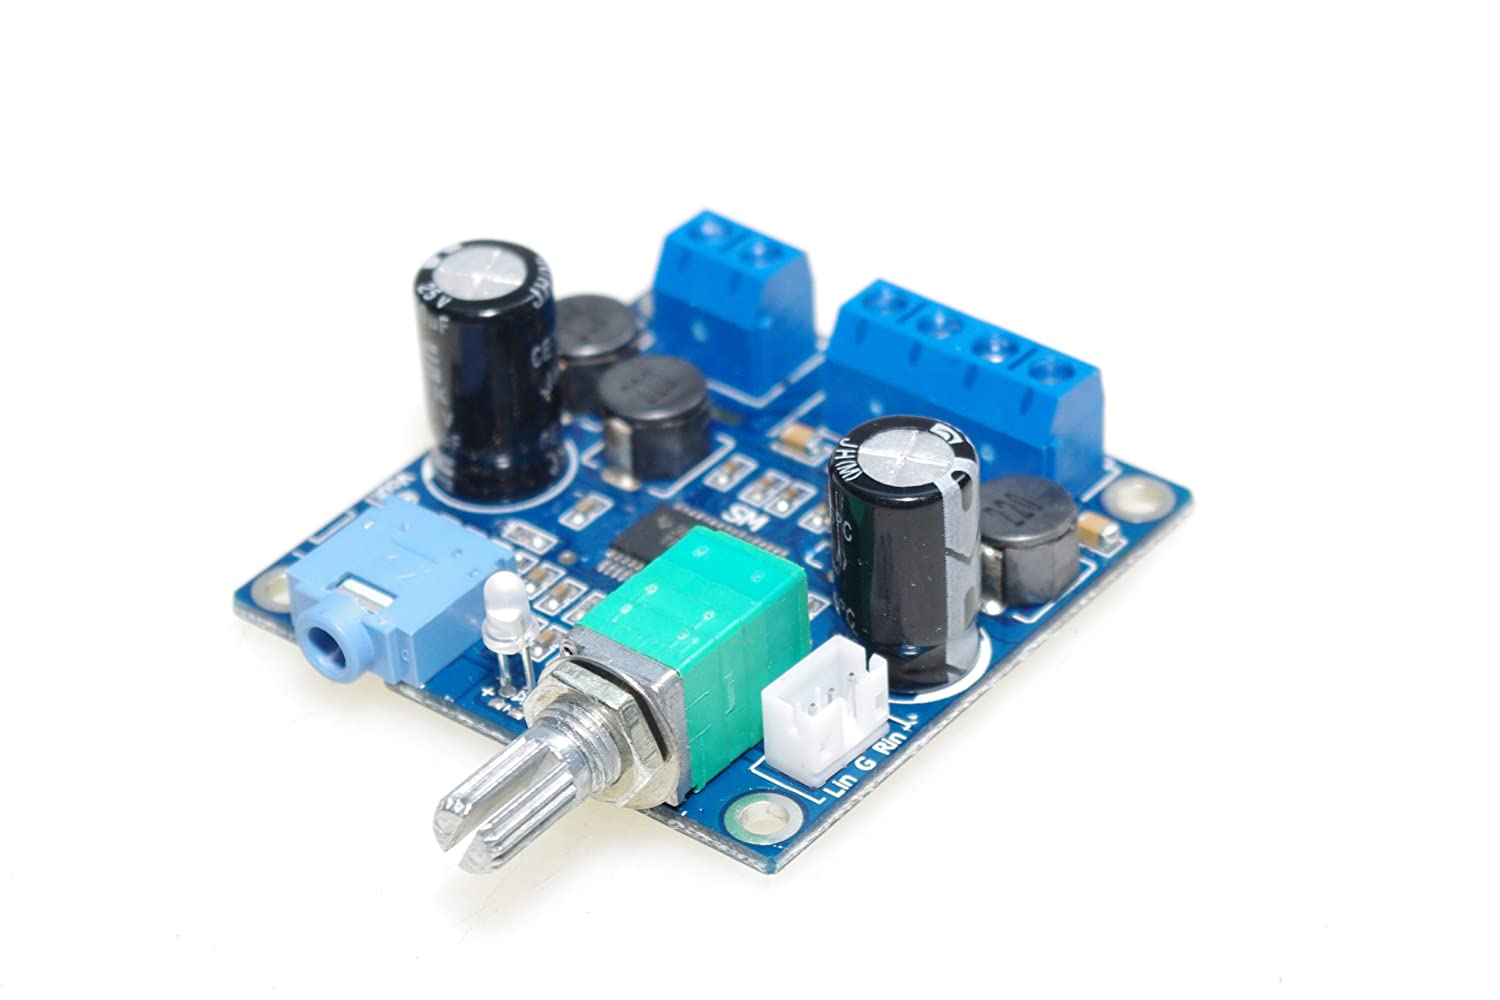 Smakn Tpa3118 Numeric 12v Power Amplifier Board How To Build 60w 8 Finished With Switch Potentiometer Parallel Mono Musical Instruments